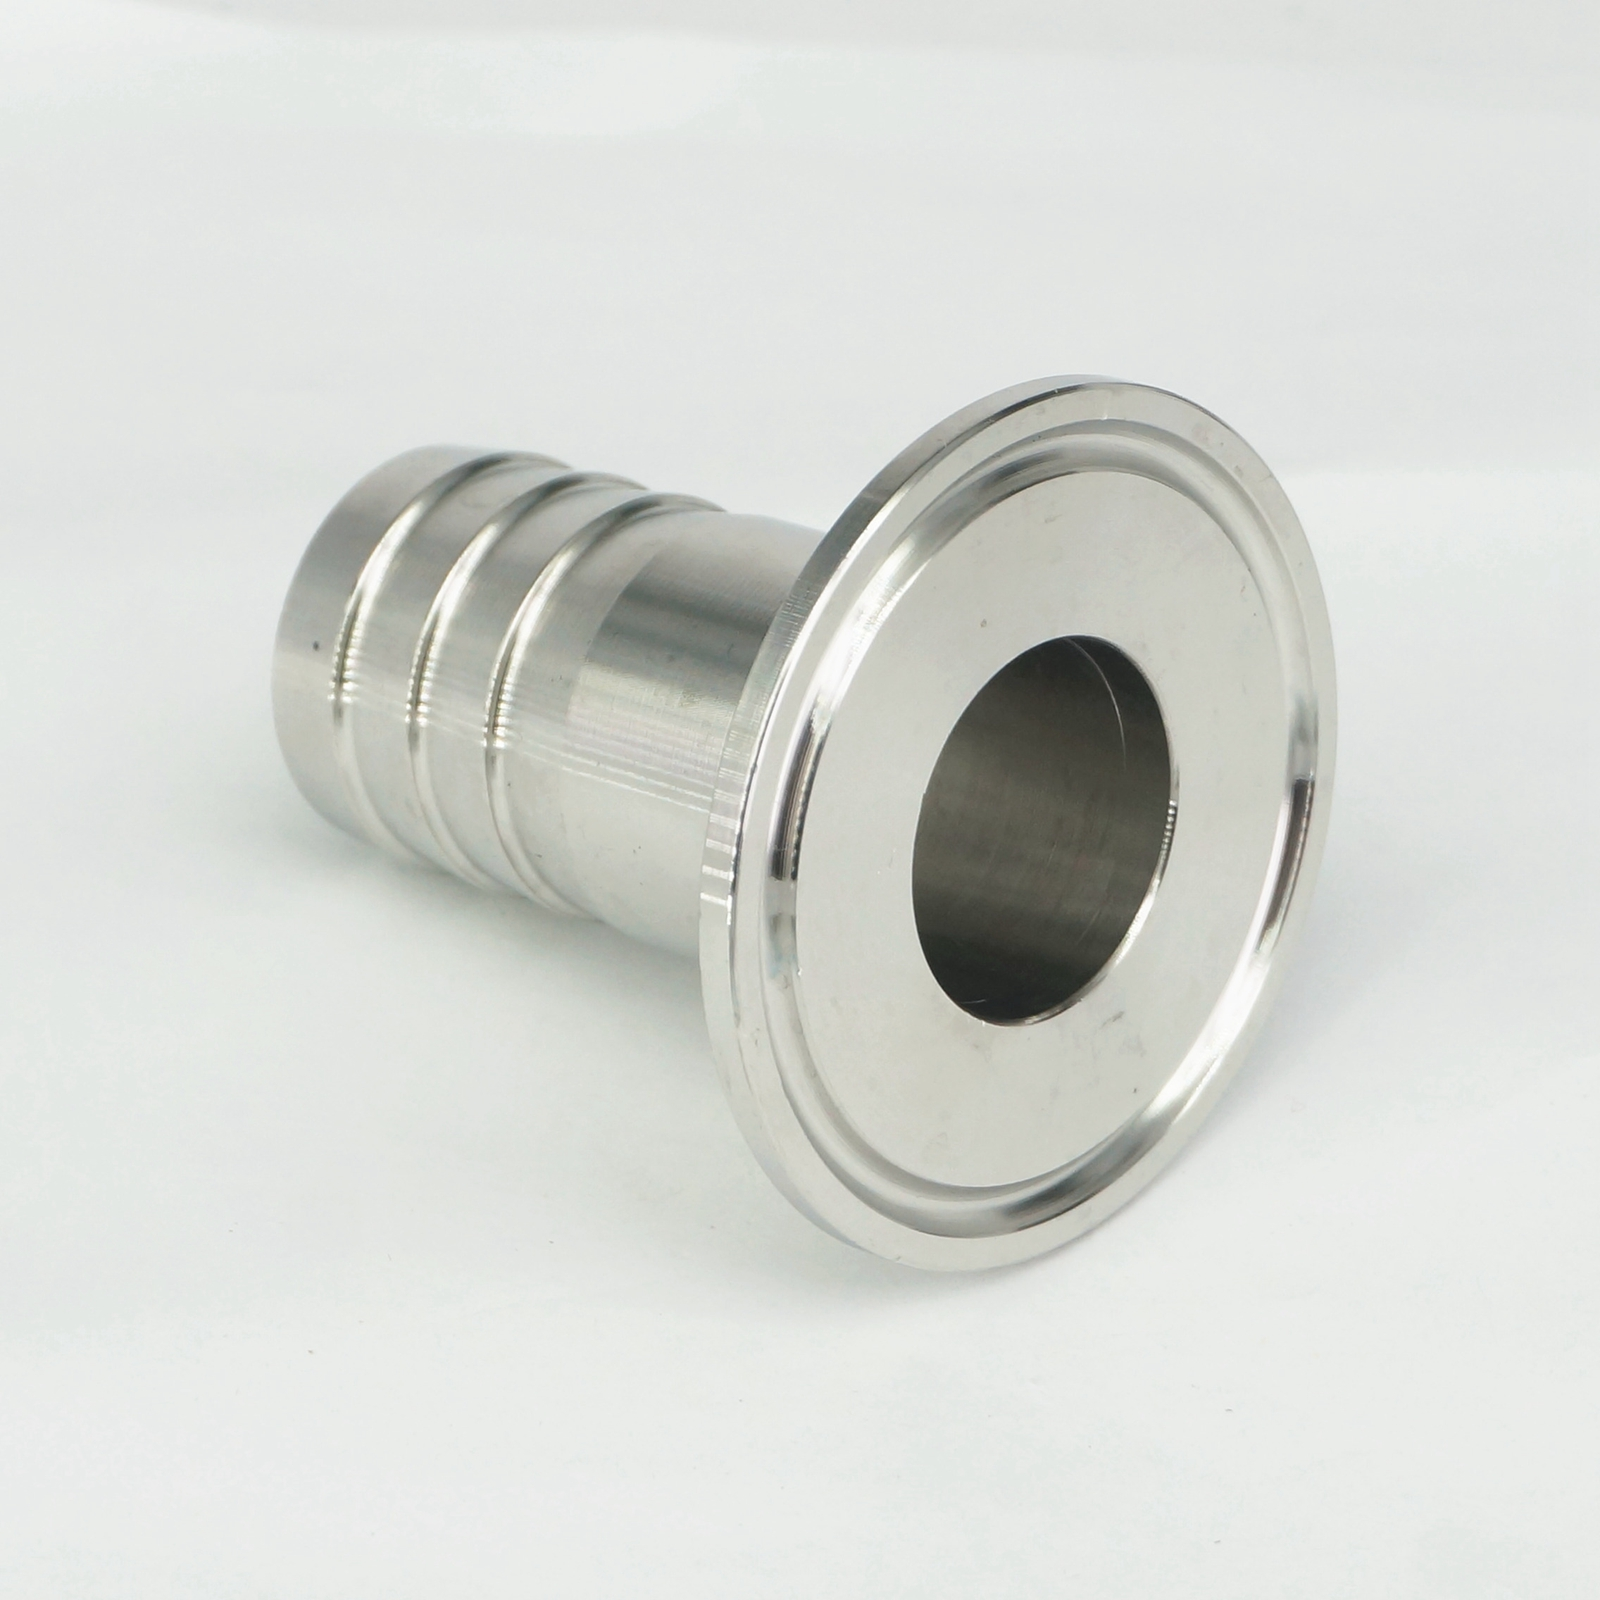 Hose clamps on barbed fittings shower mixer controls